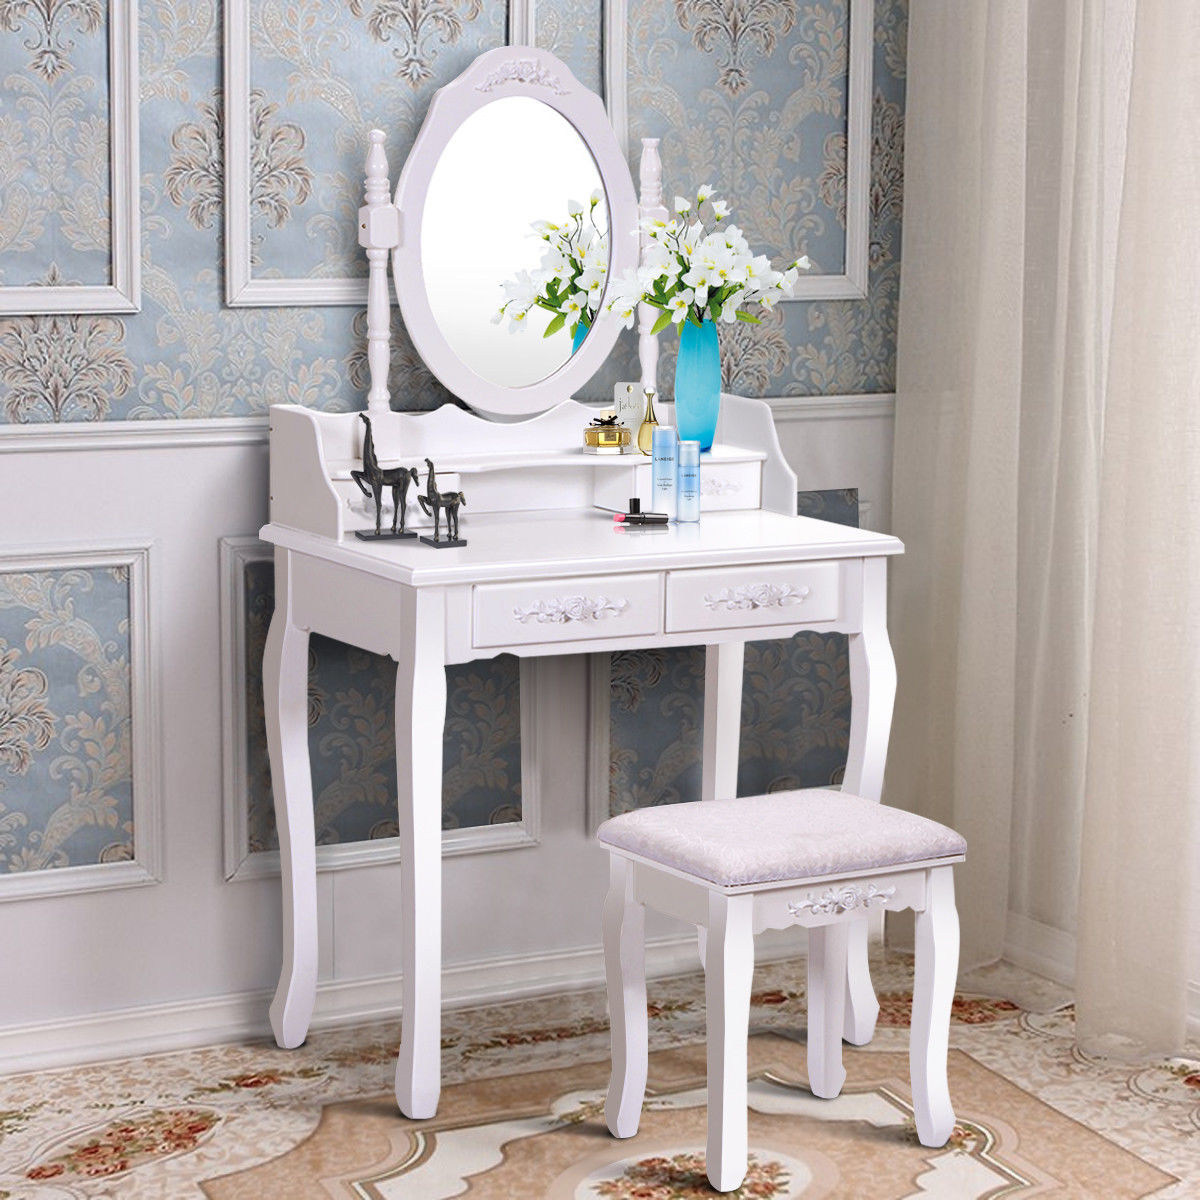 Wooden Makeup Dressing Table Vanity Set Jewelry W/ Stool 10 Drawer Mirror